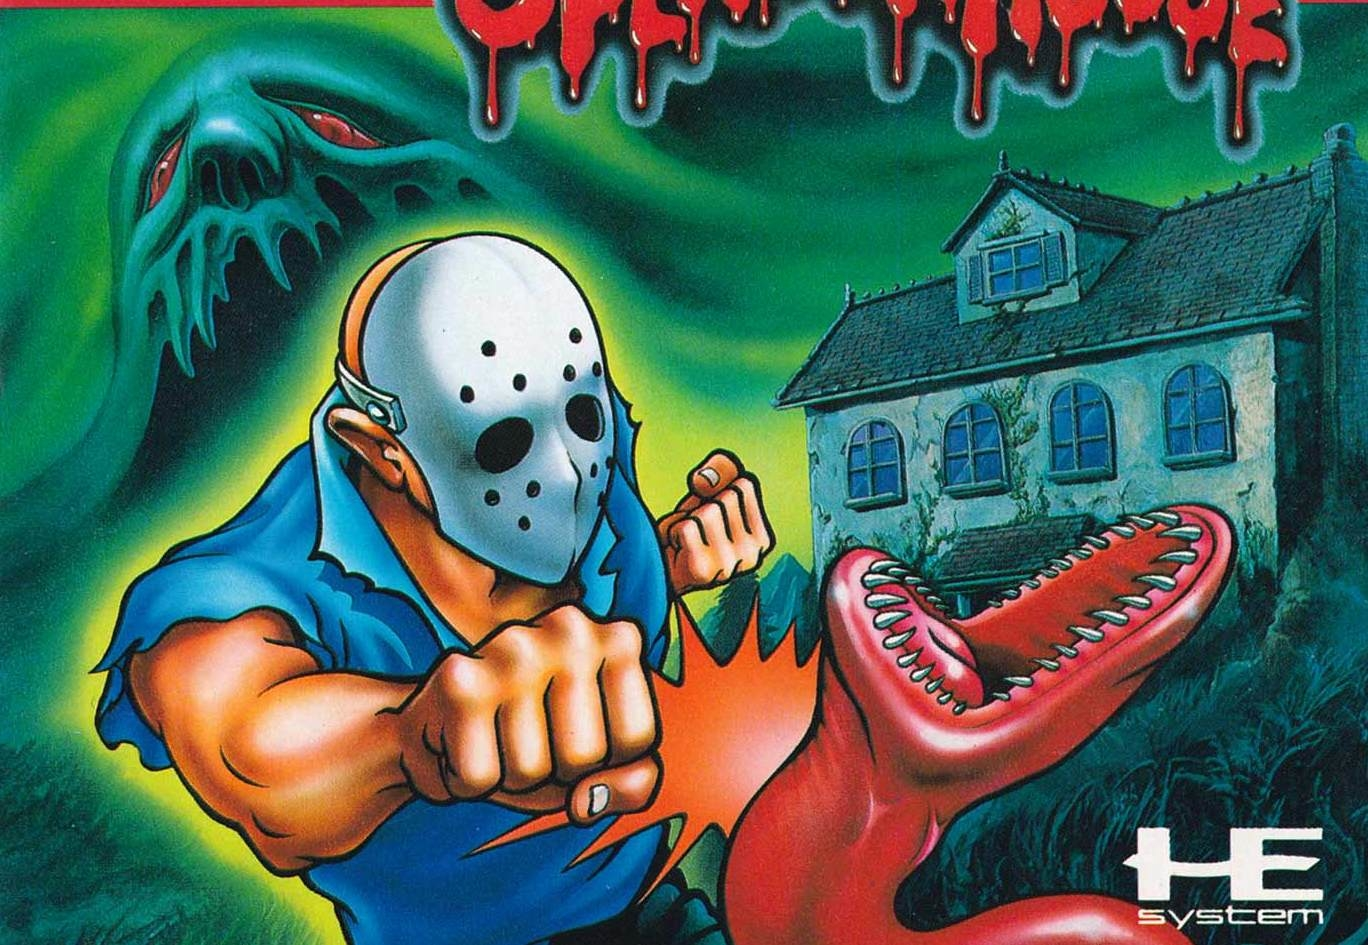 Splatterhouse featured